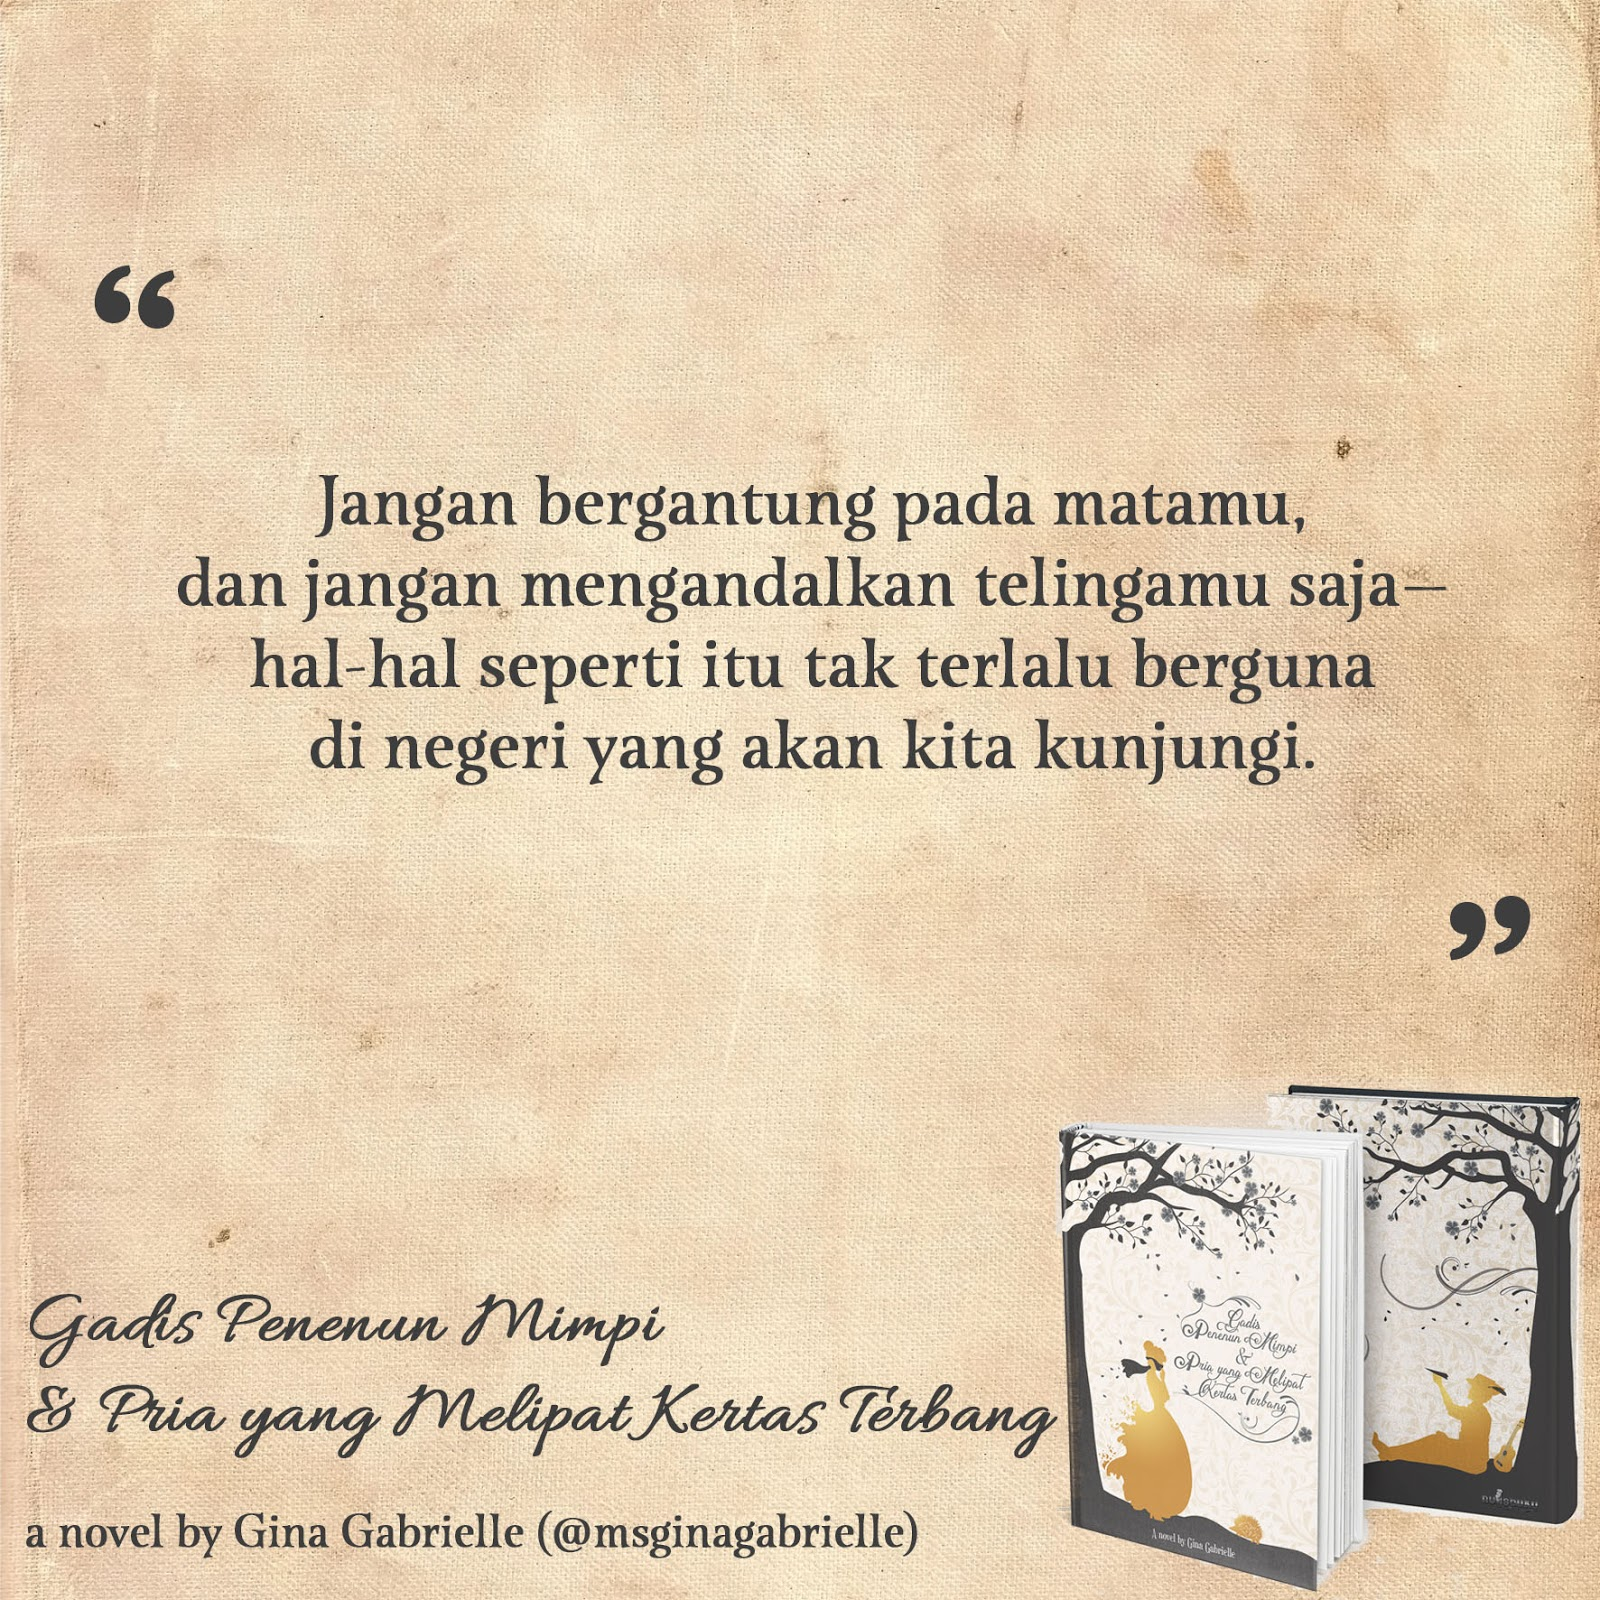 kubikel r ce quote of the day kuisbuku gadis penenun mimpi